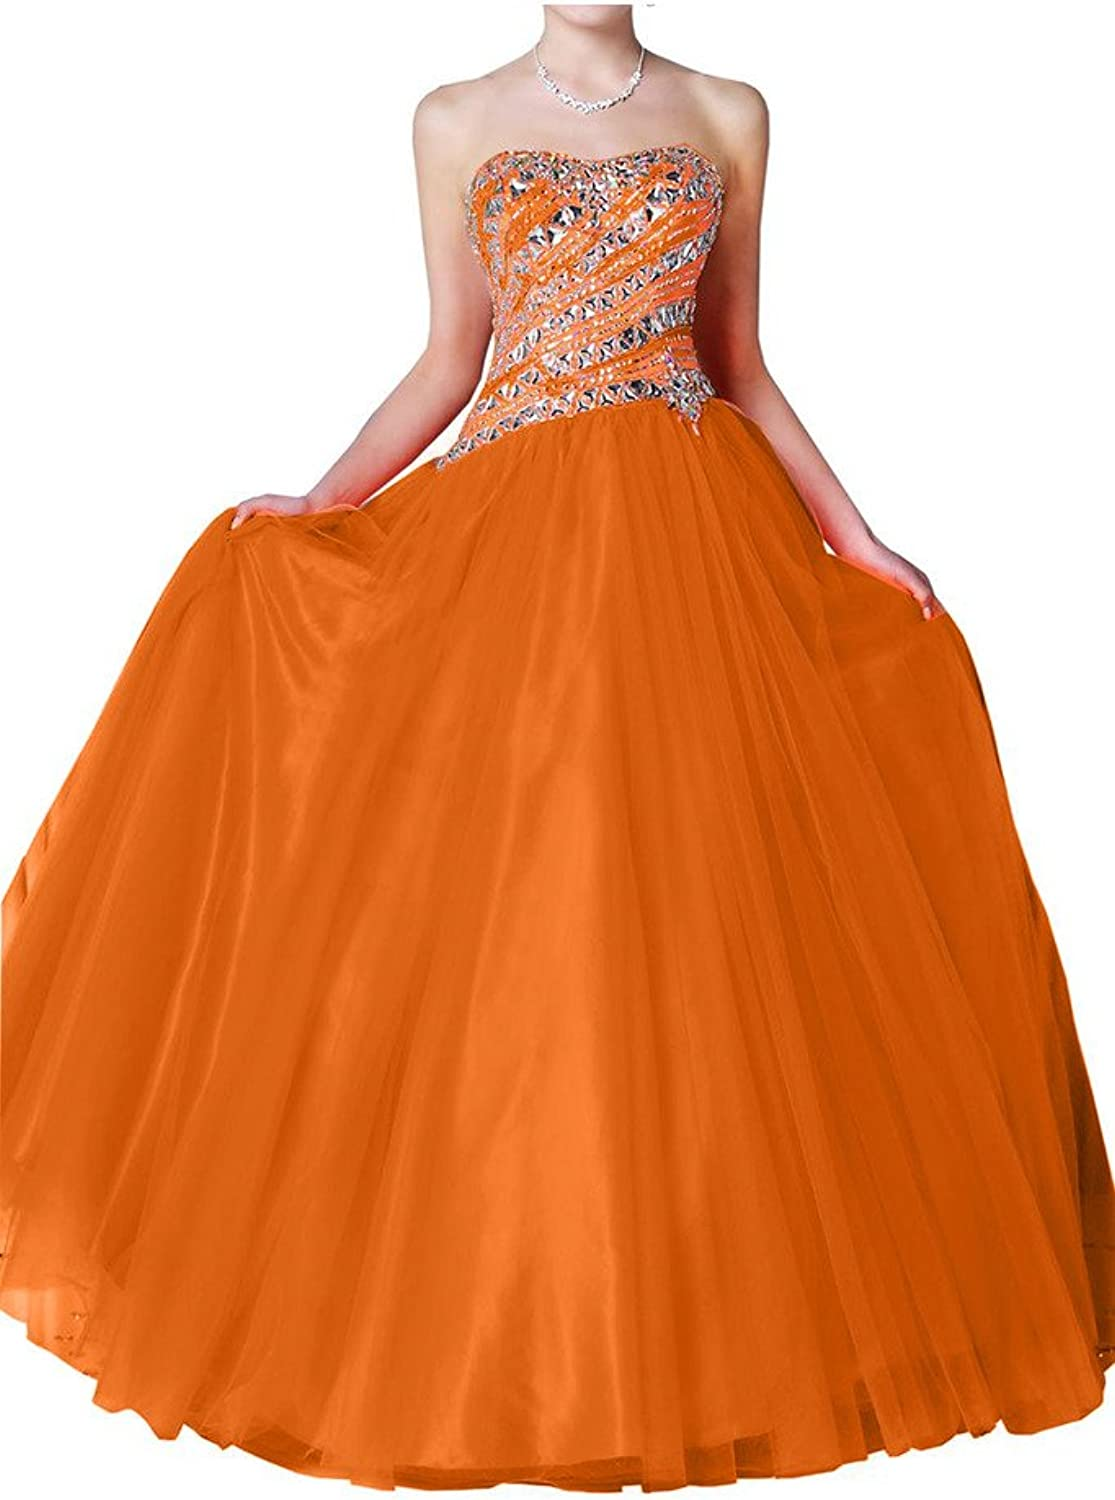 Avril Dress Strapless Ball Gown Rhinestone Quinceanera Dress Satin Tulle